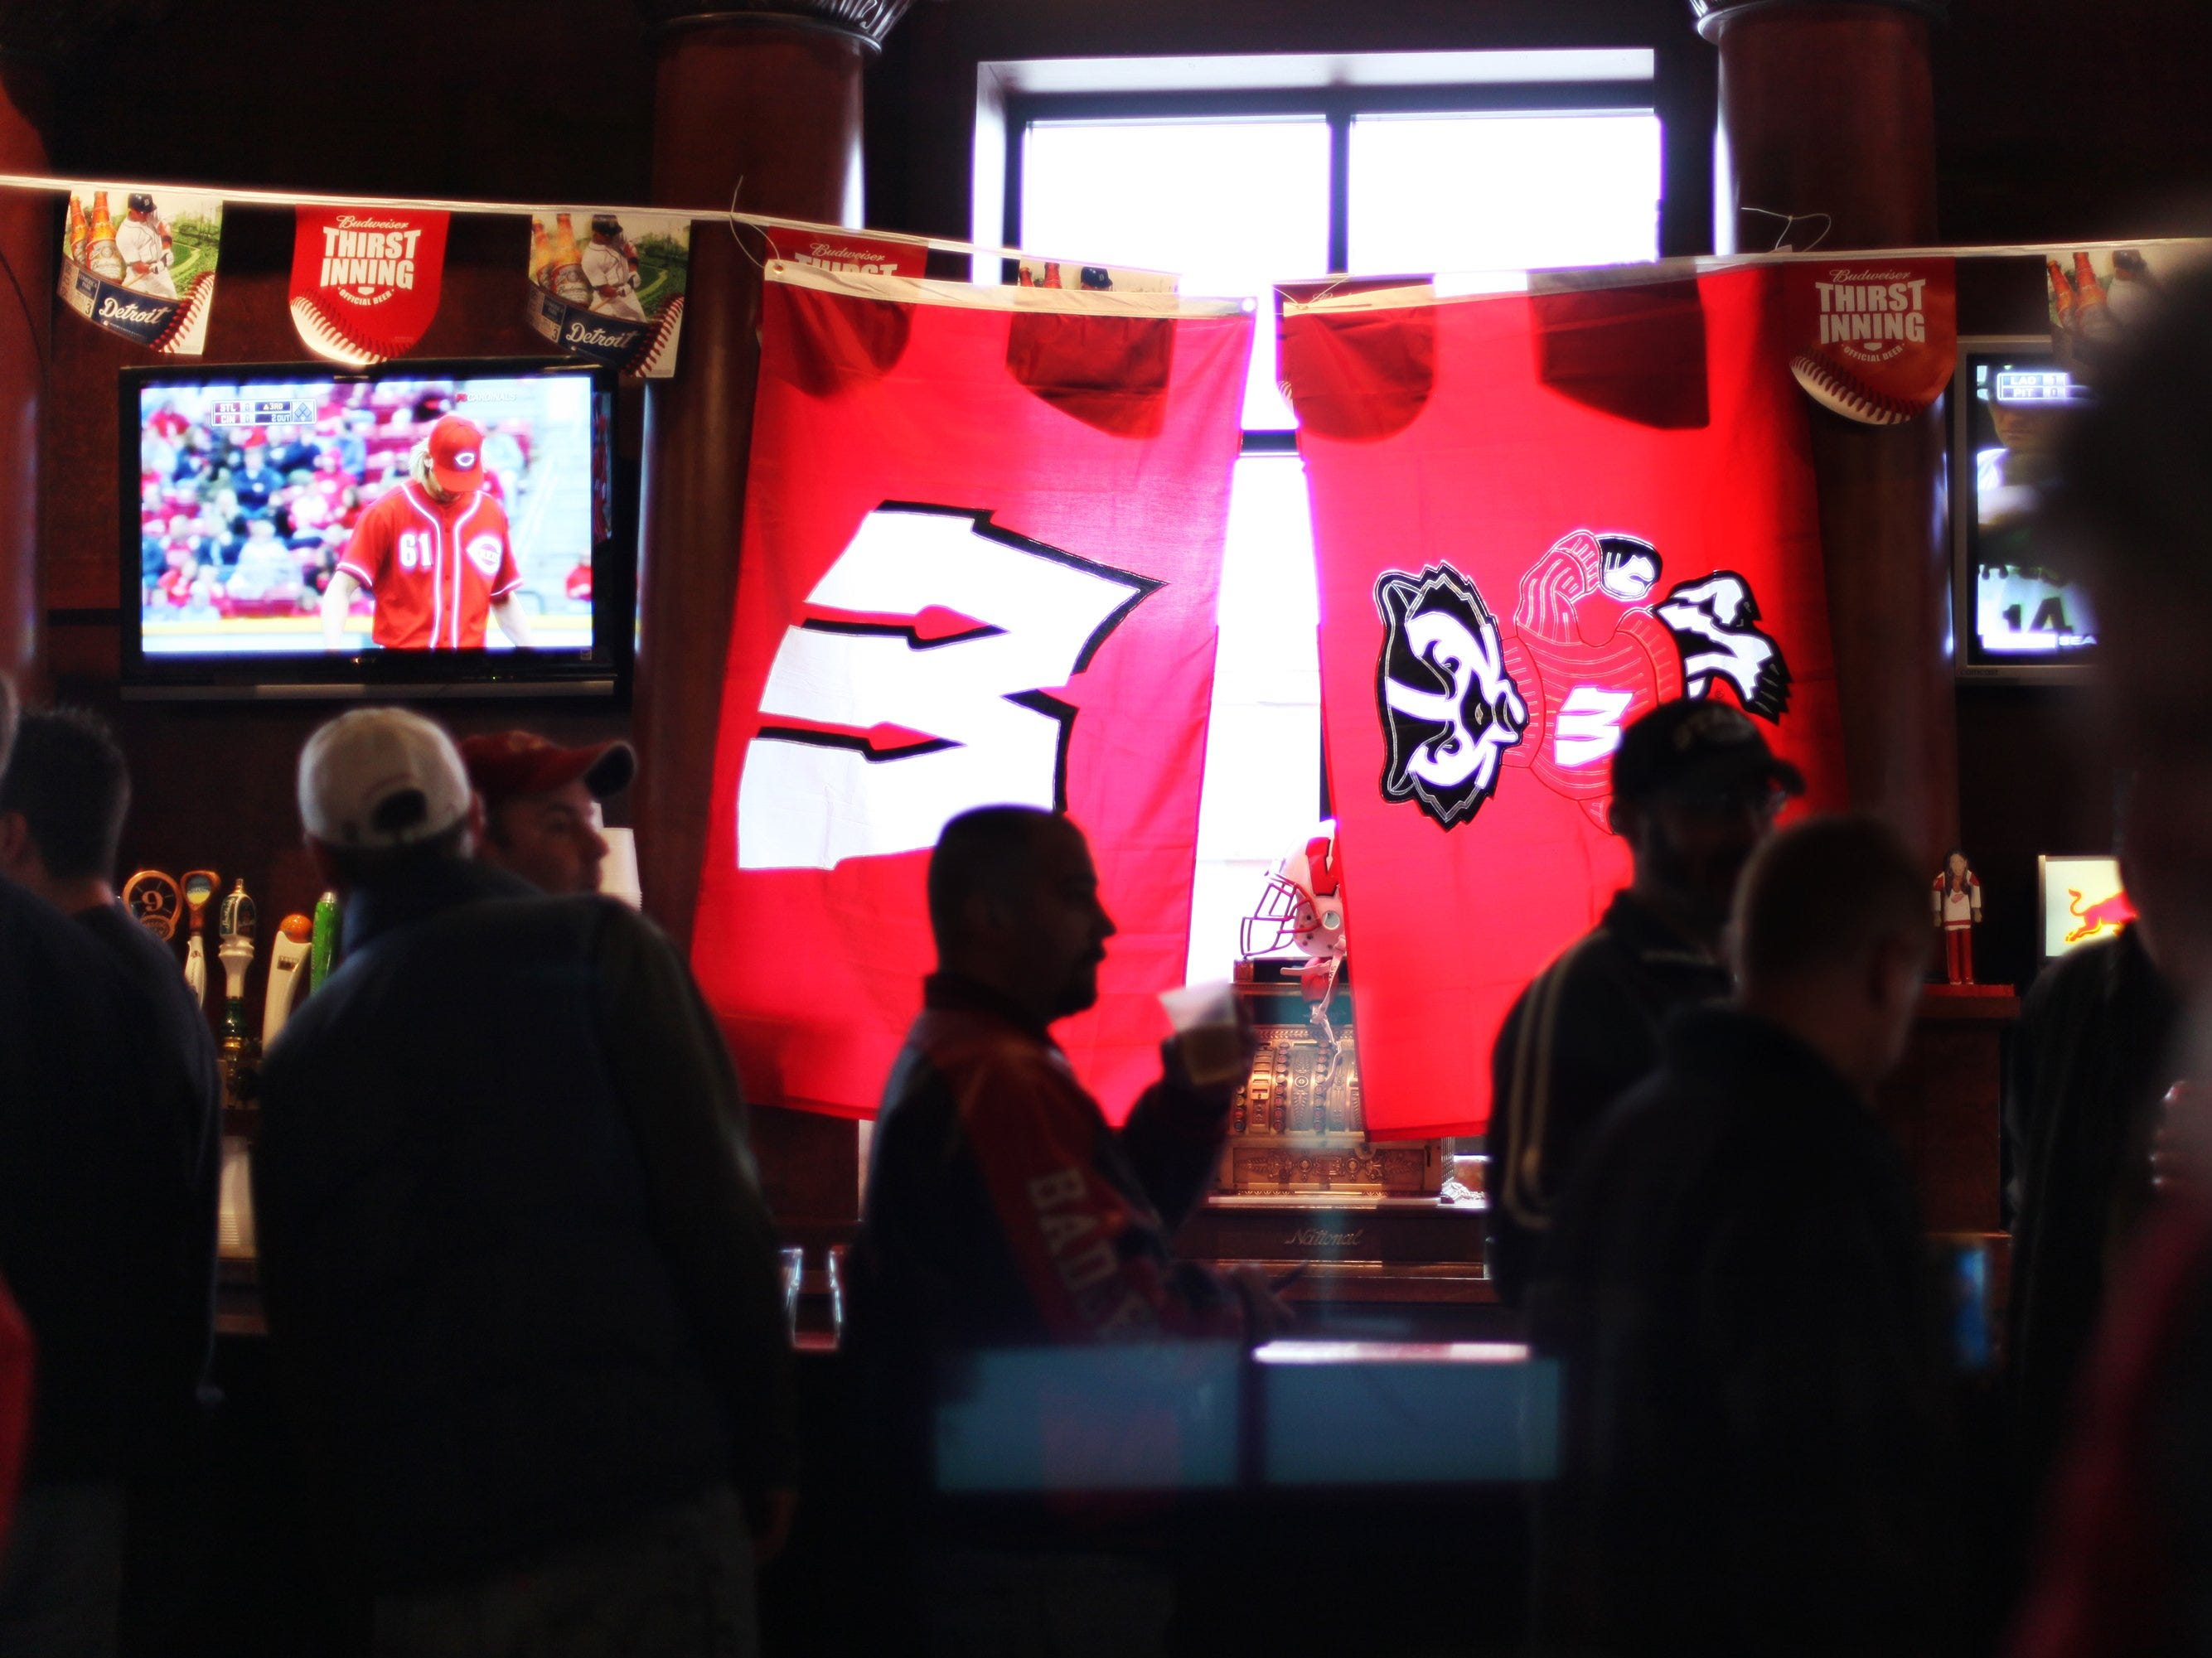 Cheli's Chili Bar in Detroit is the unofficial gathering place for Wisconsin Badger fans because Chris Chelios was on their winning team in 1983. Photo taken on April 8, 2010.